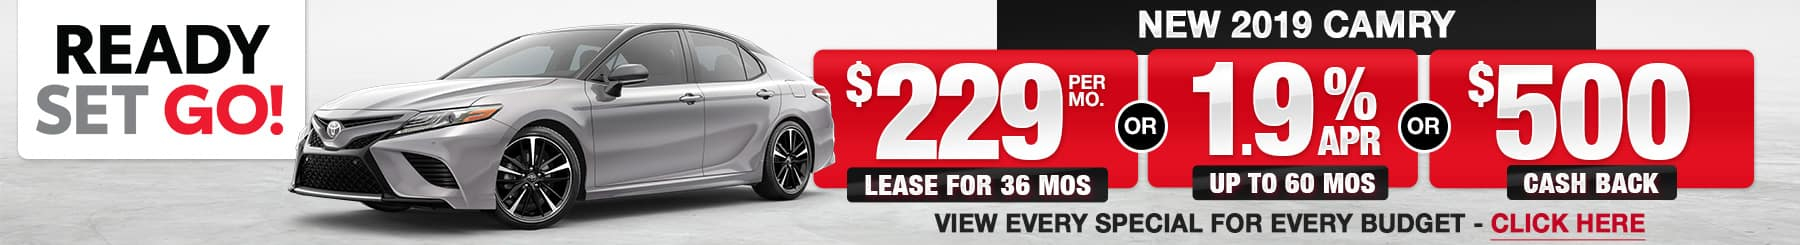 2019 Camry Lease or Finance Offers